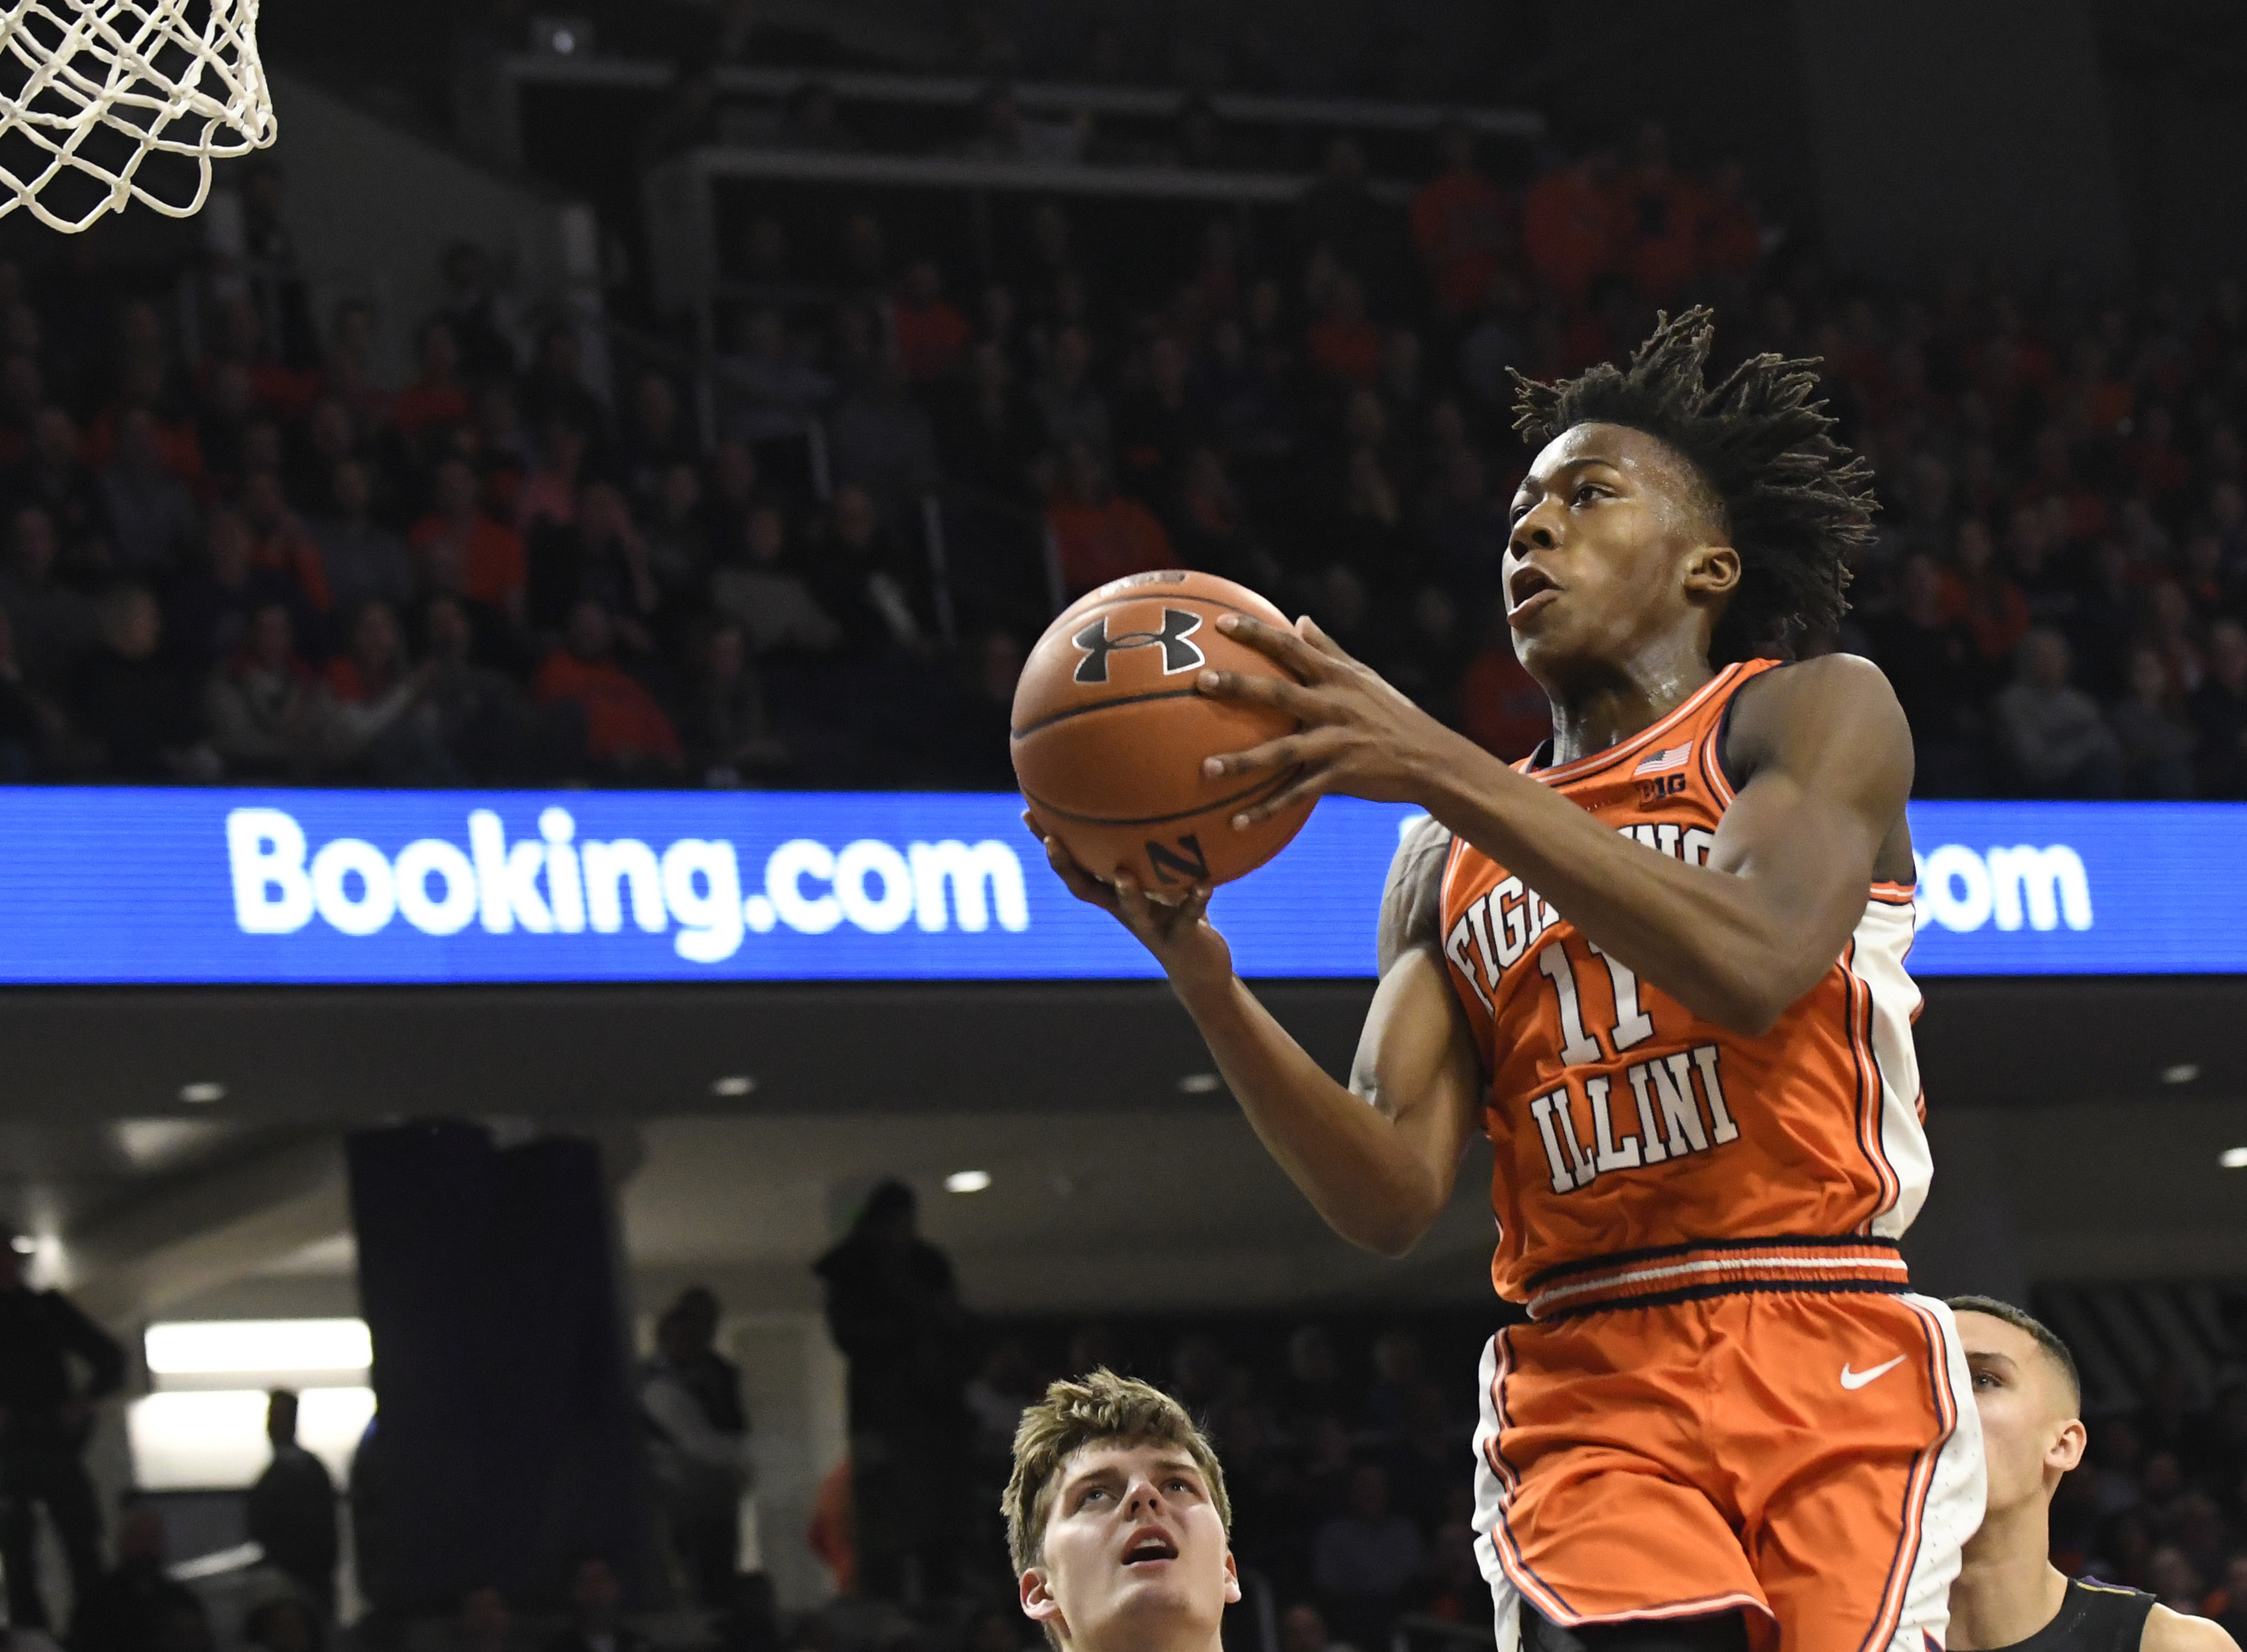 Feb 27, 2020; Evanston, Illinois, USA; Illinois Fighting Illini guard Ayo Dosunmu (11) goes to the basket against the Northwestern Wildcats during the first half at Welsh-Ryan Arena.